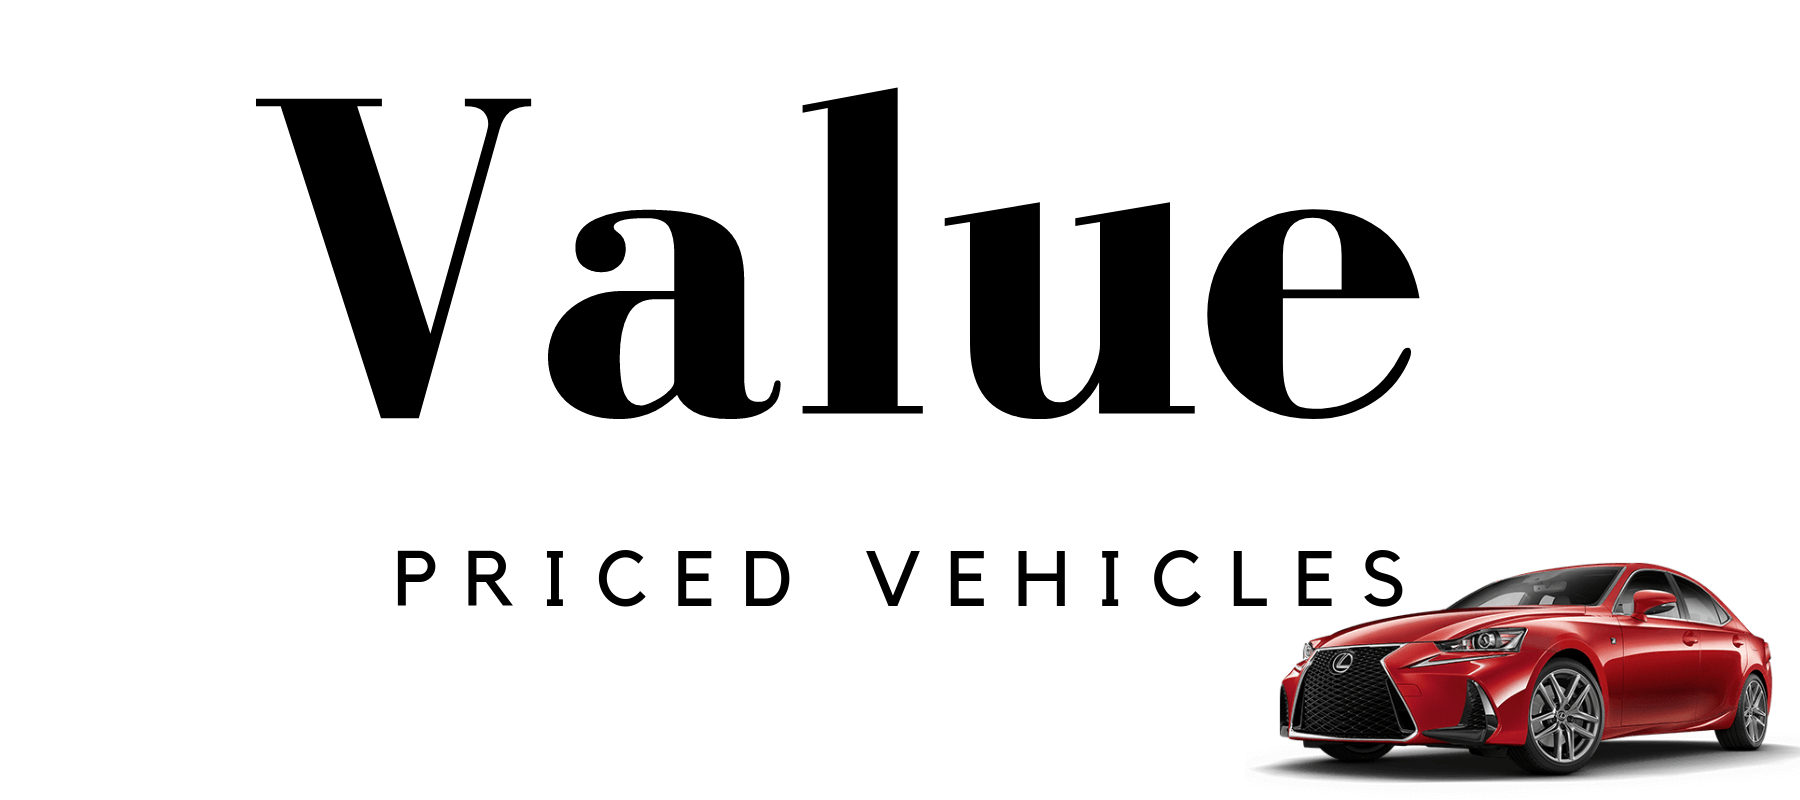 Used Vehicles Priced at $20K or less